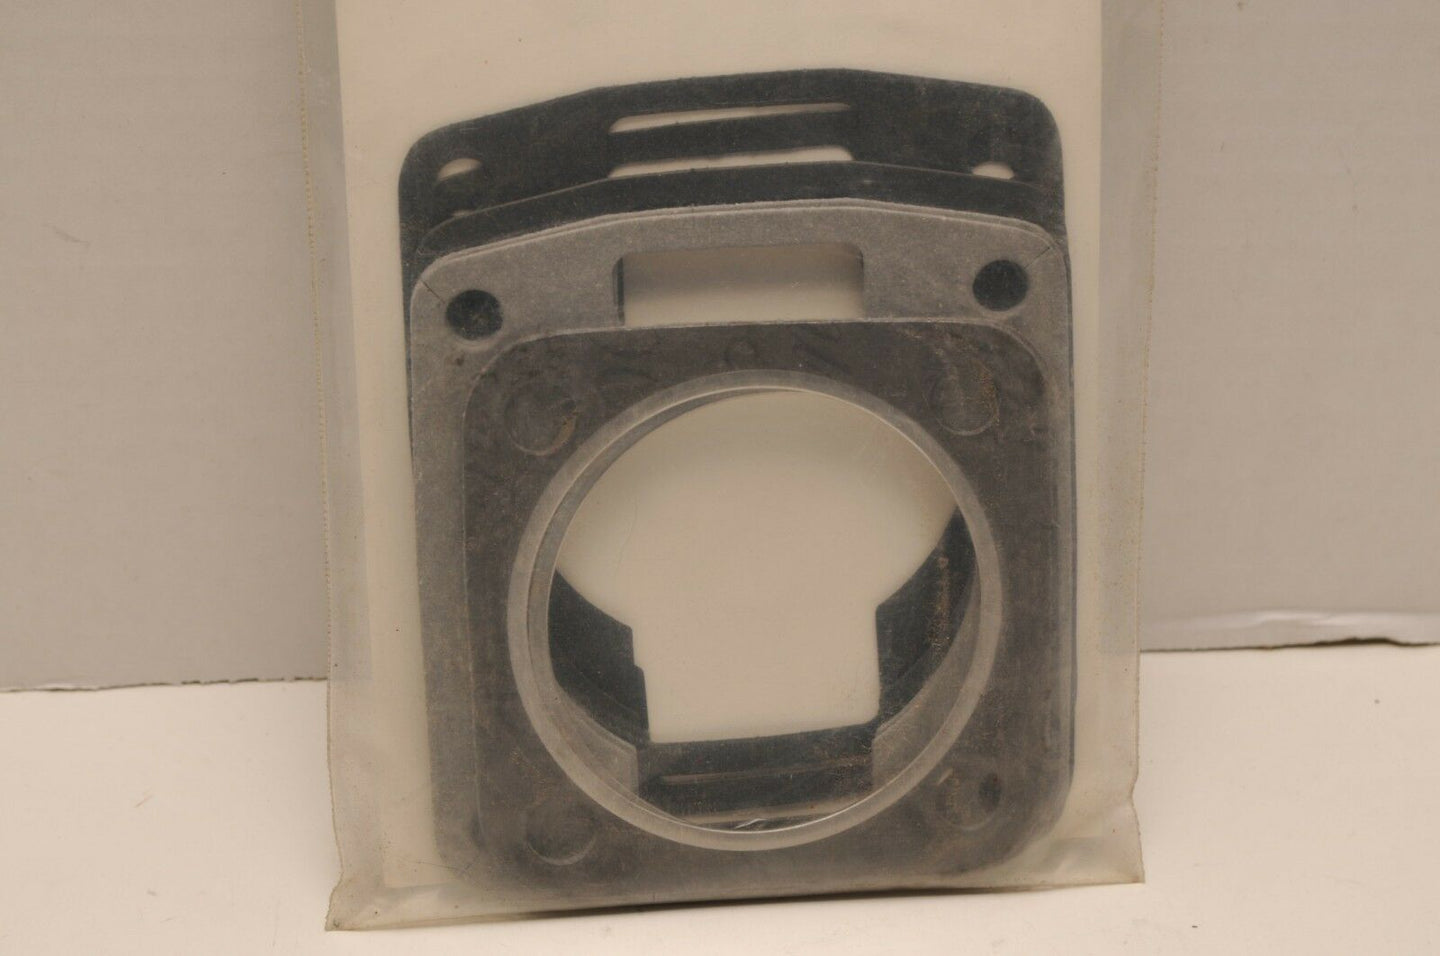 NOS Kimpex Top End Gasket Set T09-8035 / 712035 - JLO Cuyuna 440/2 2F LR